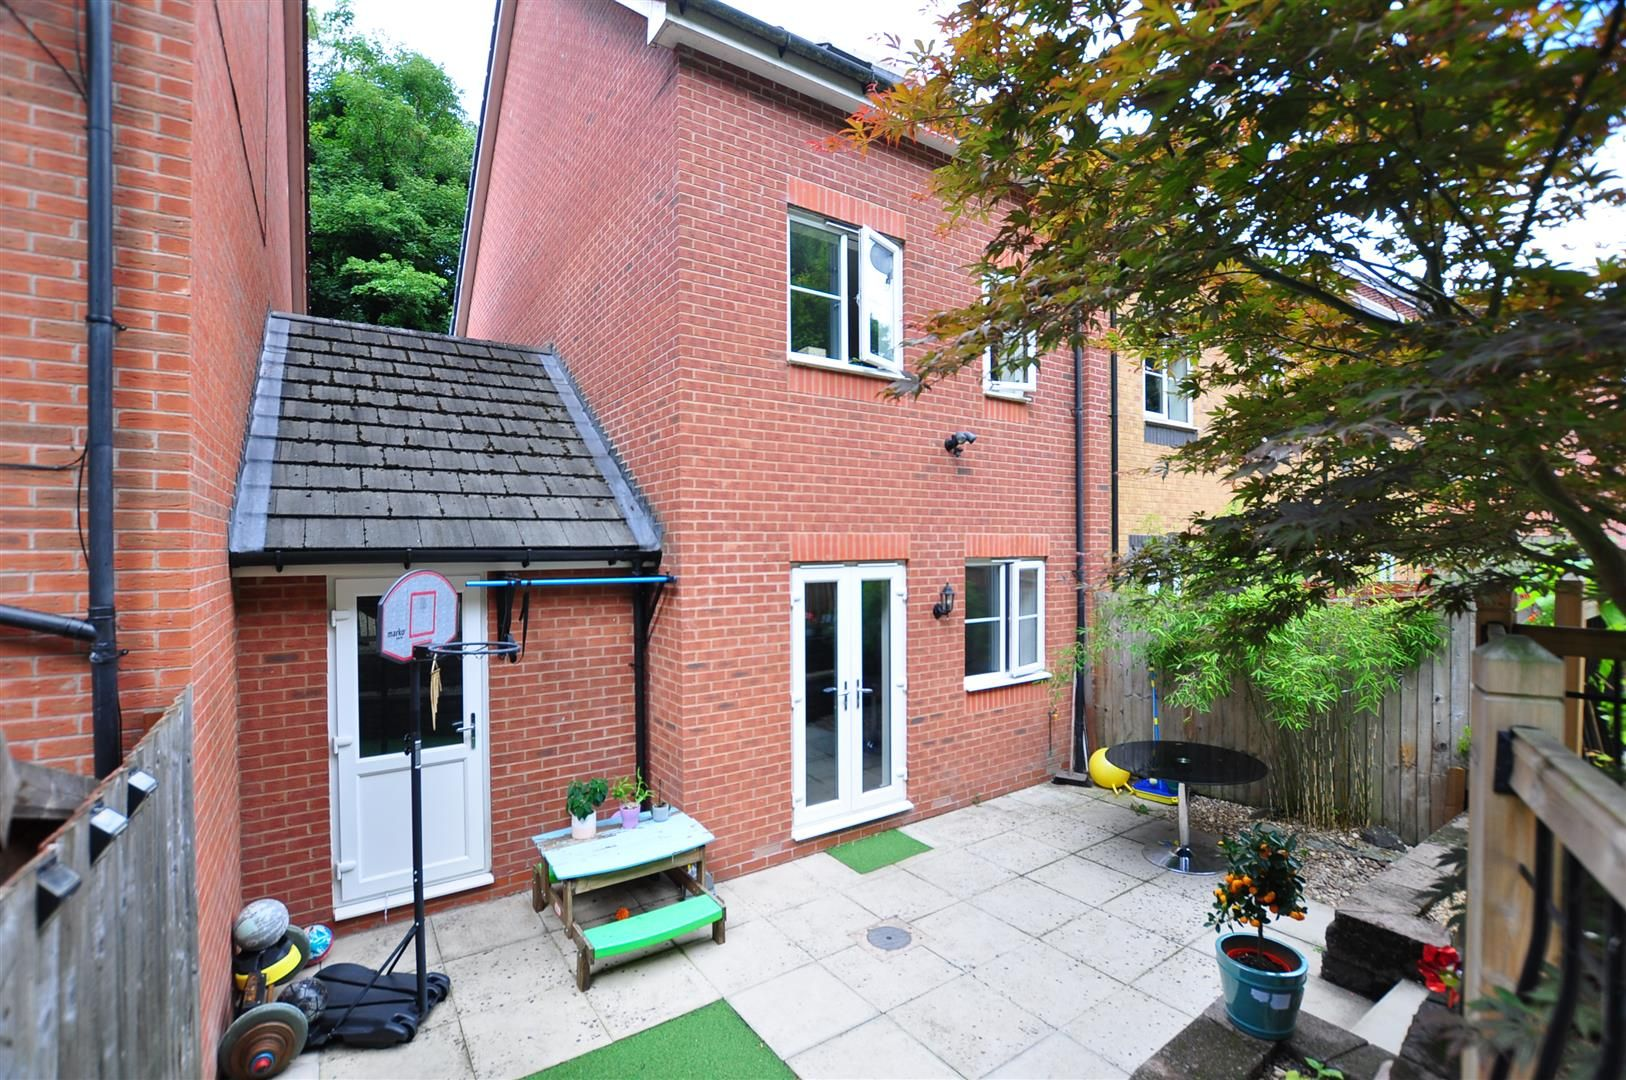 4 bed end-of-terrace for sale 19